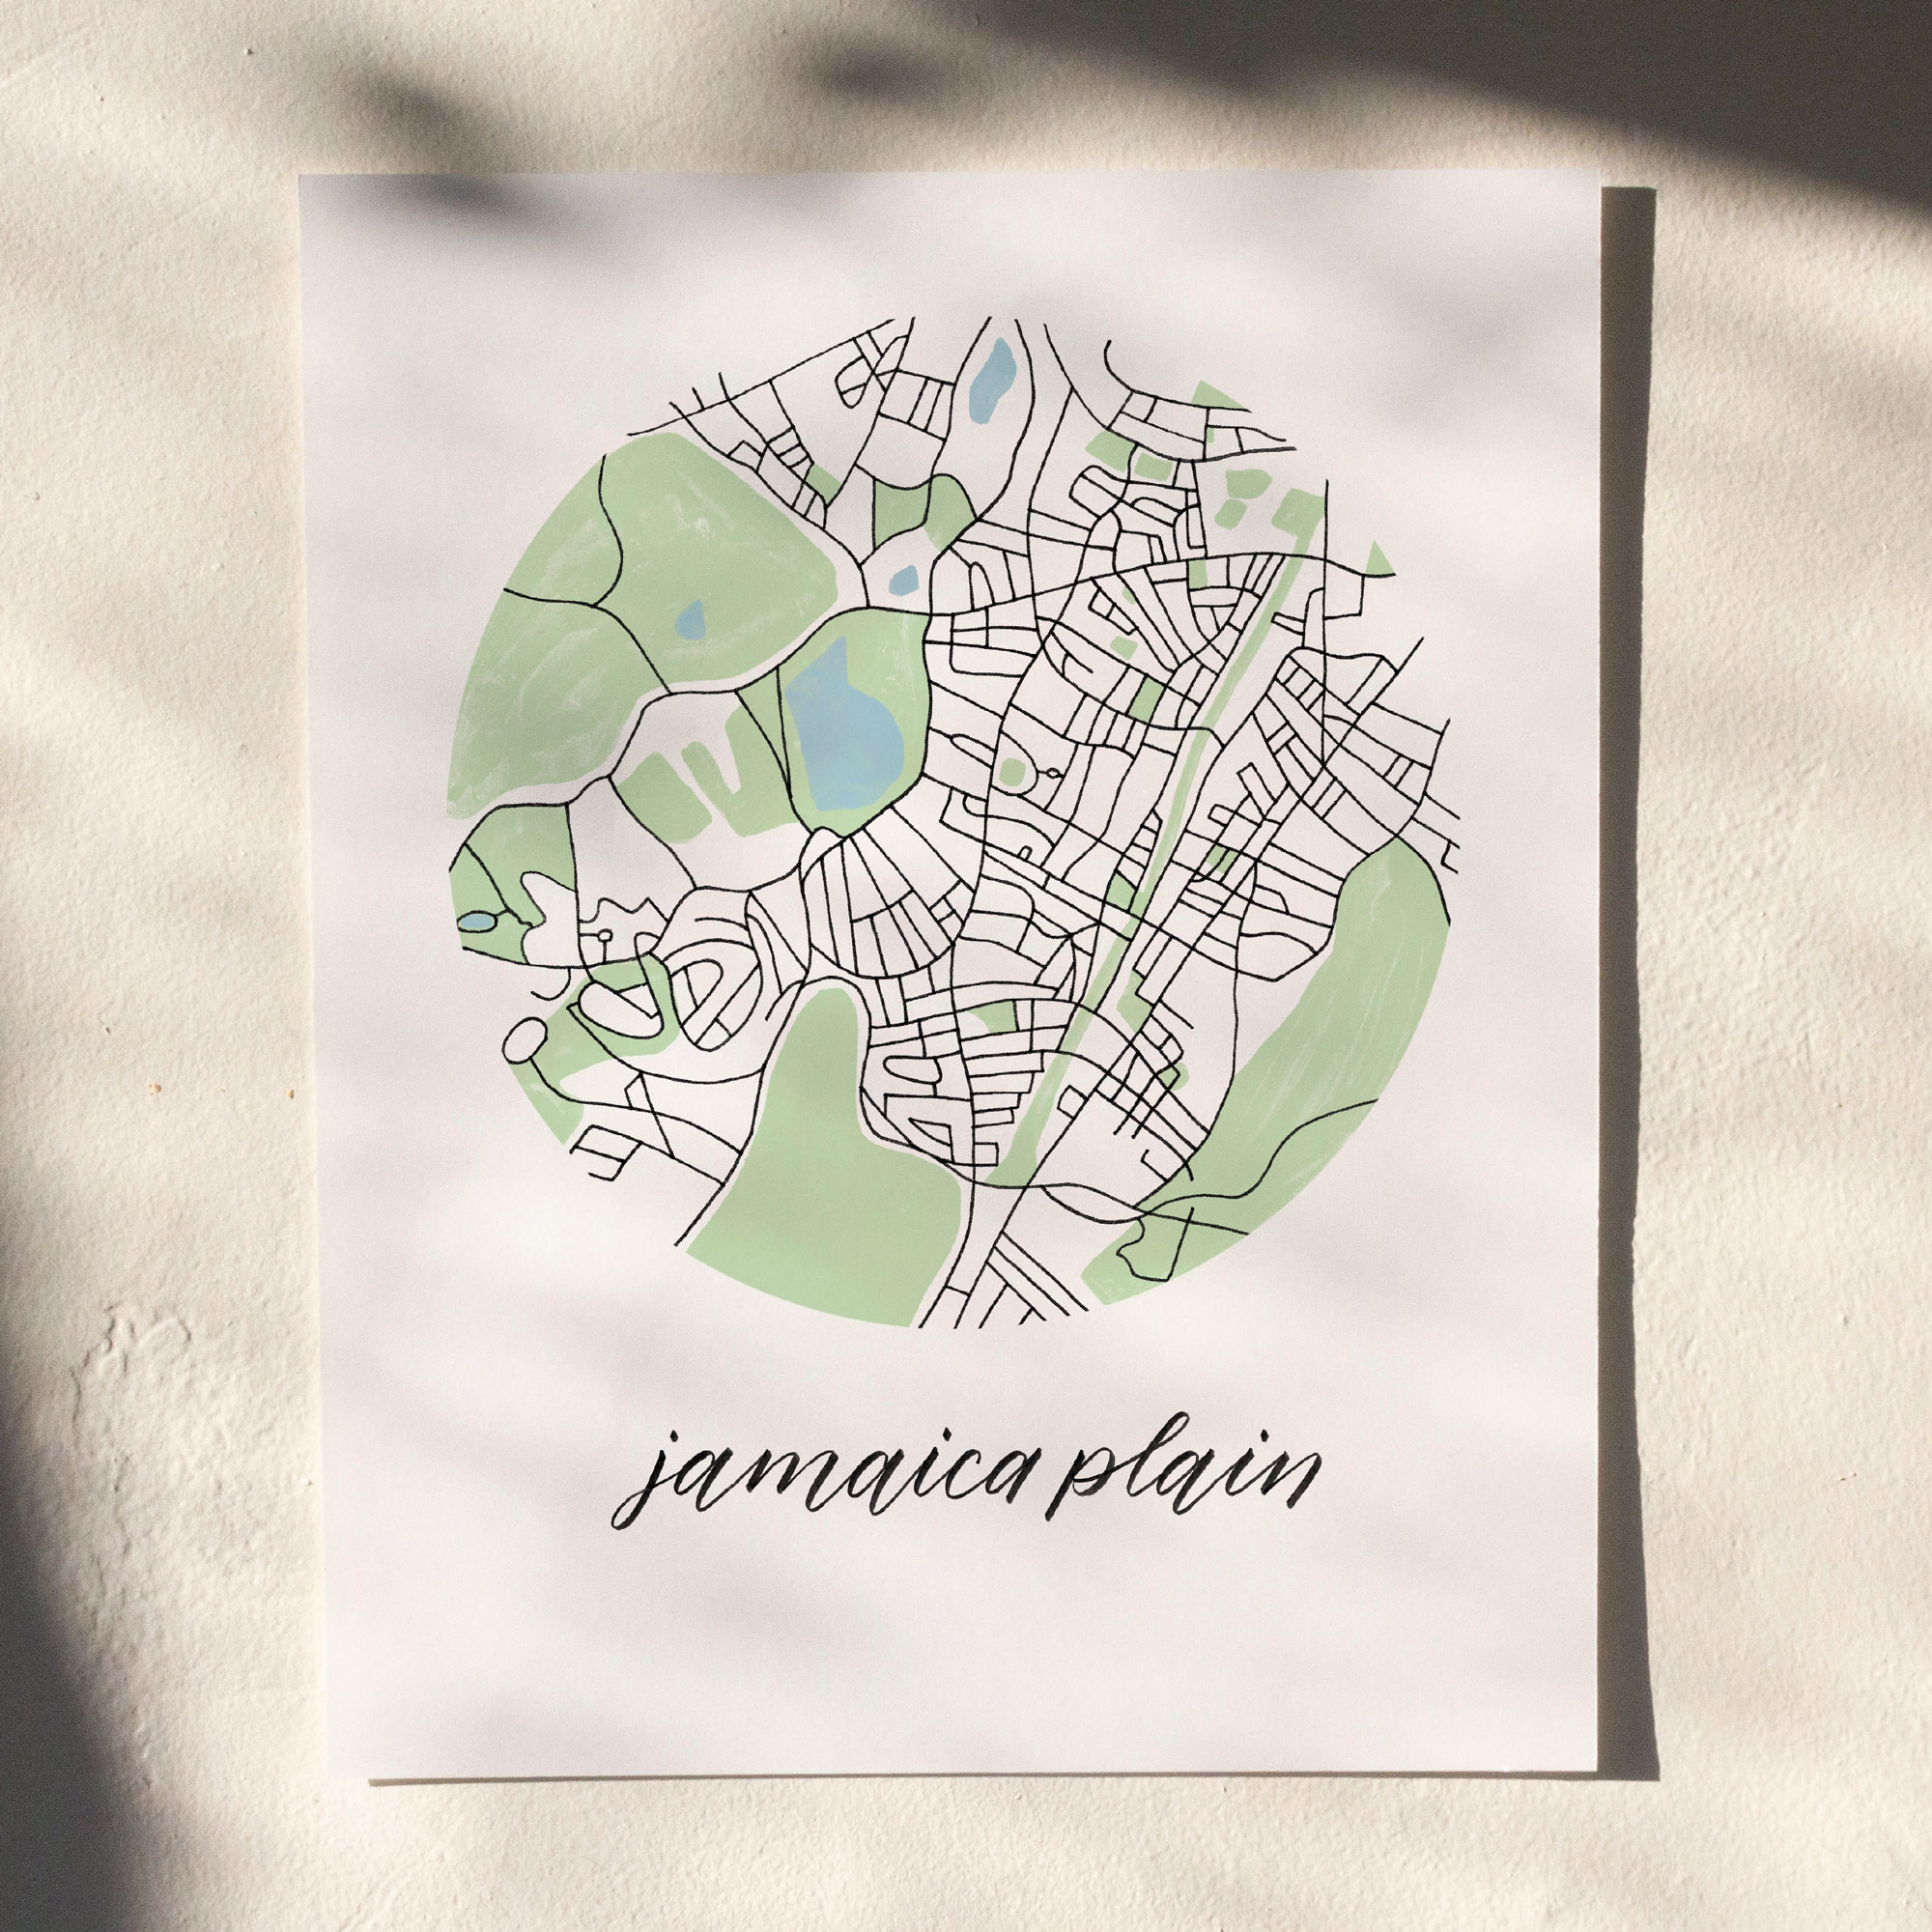 Jamaica Plain, Boston Map Print hanging on white wall with leaf shadows across the image